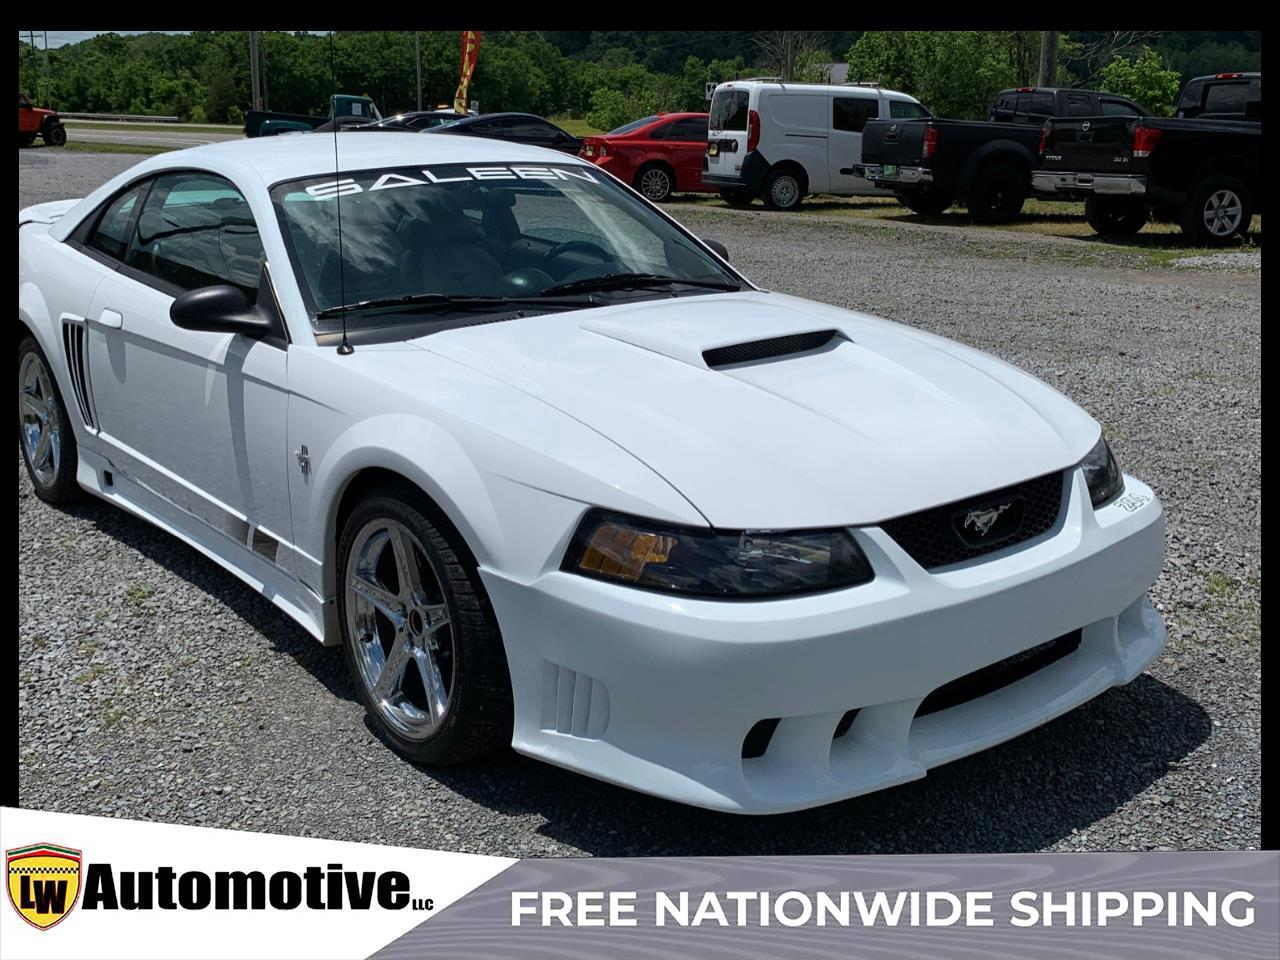 2000 Ford Mustang 2dr Cpe Saleen